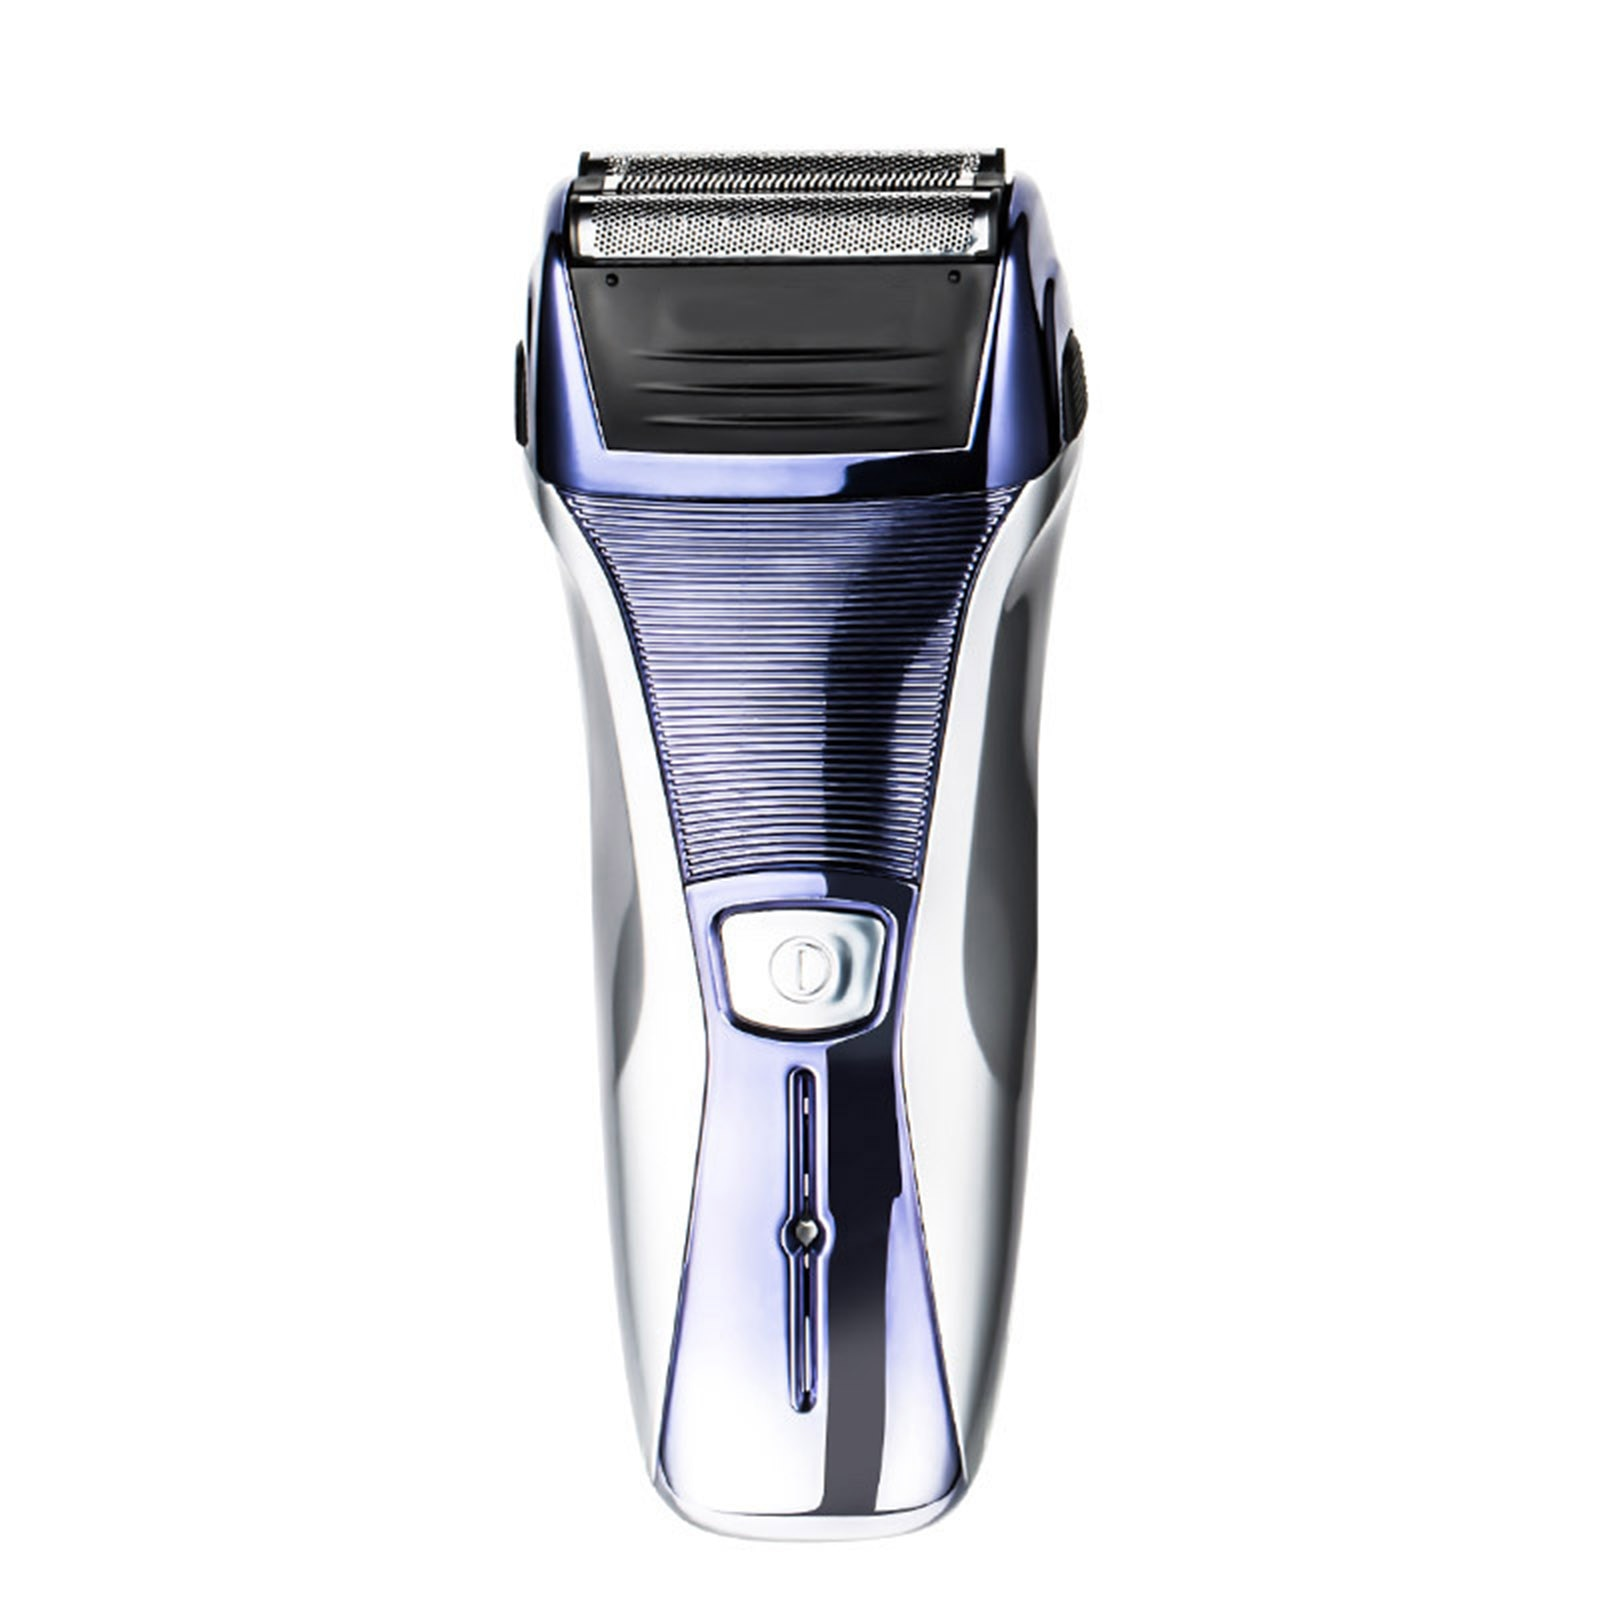 2 In 1 Men Electric Shaver USB Rechargeable Foil Shaver Washable Hair Groomer For Body Hair Beard недорого